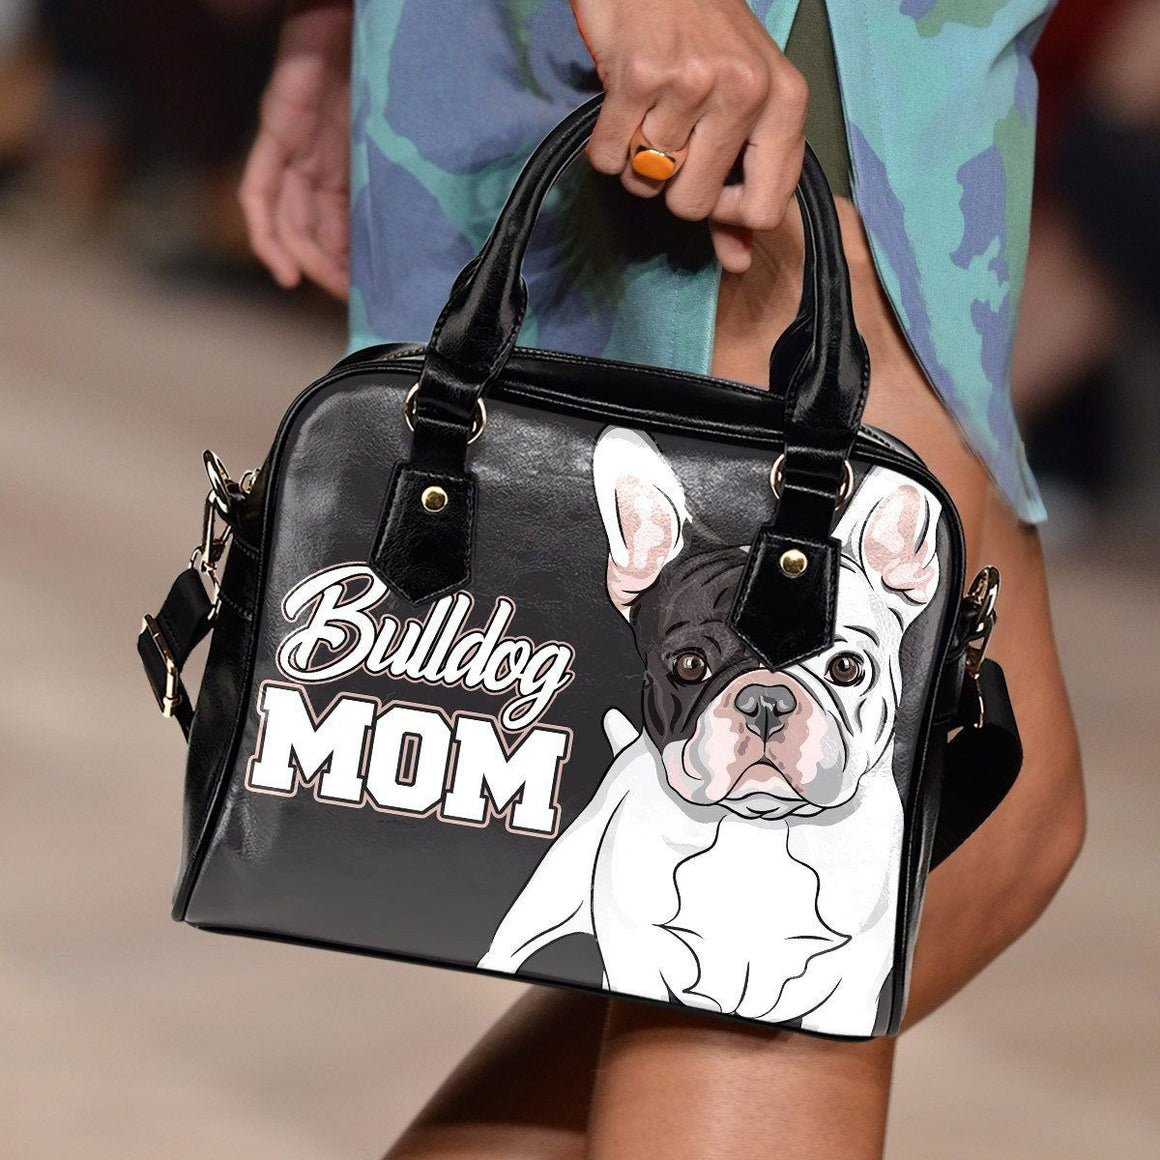 Bulldog Mom Shoulder Bag - ONLINEPRESALES